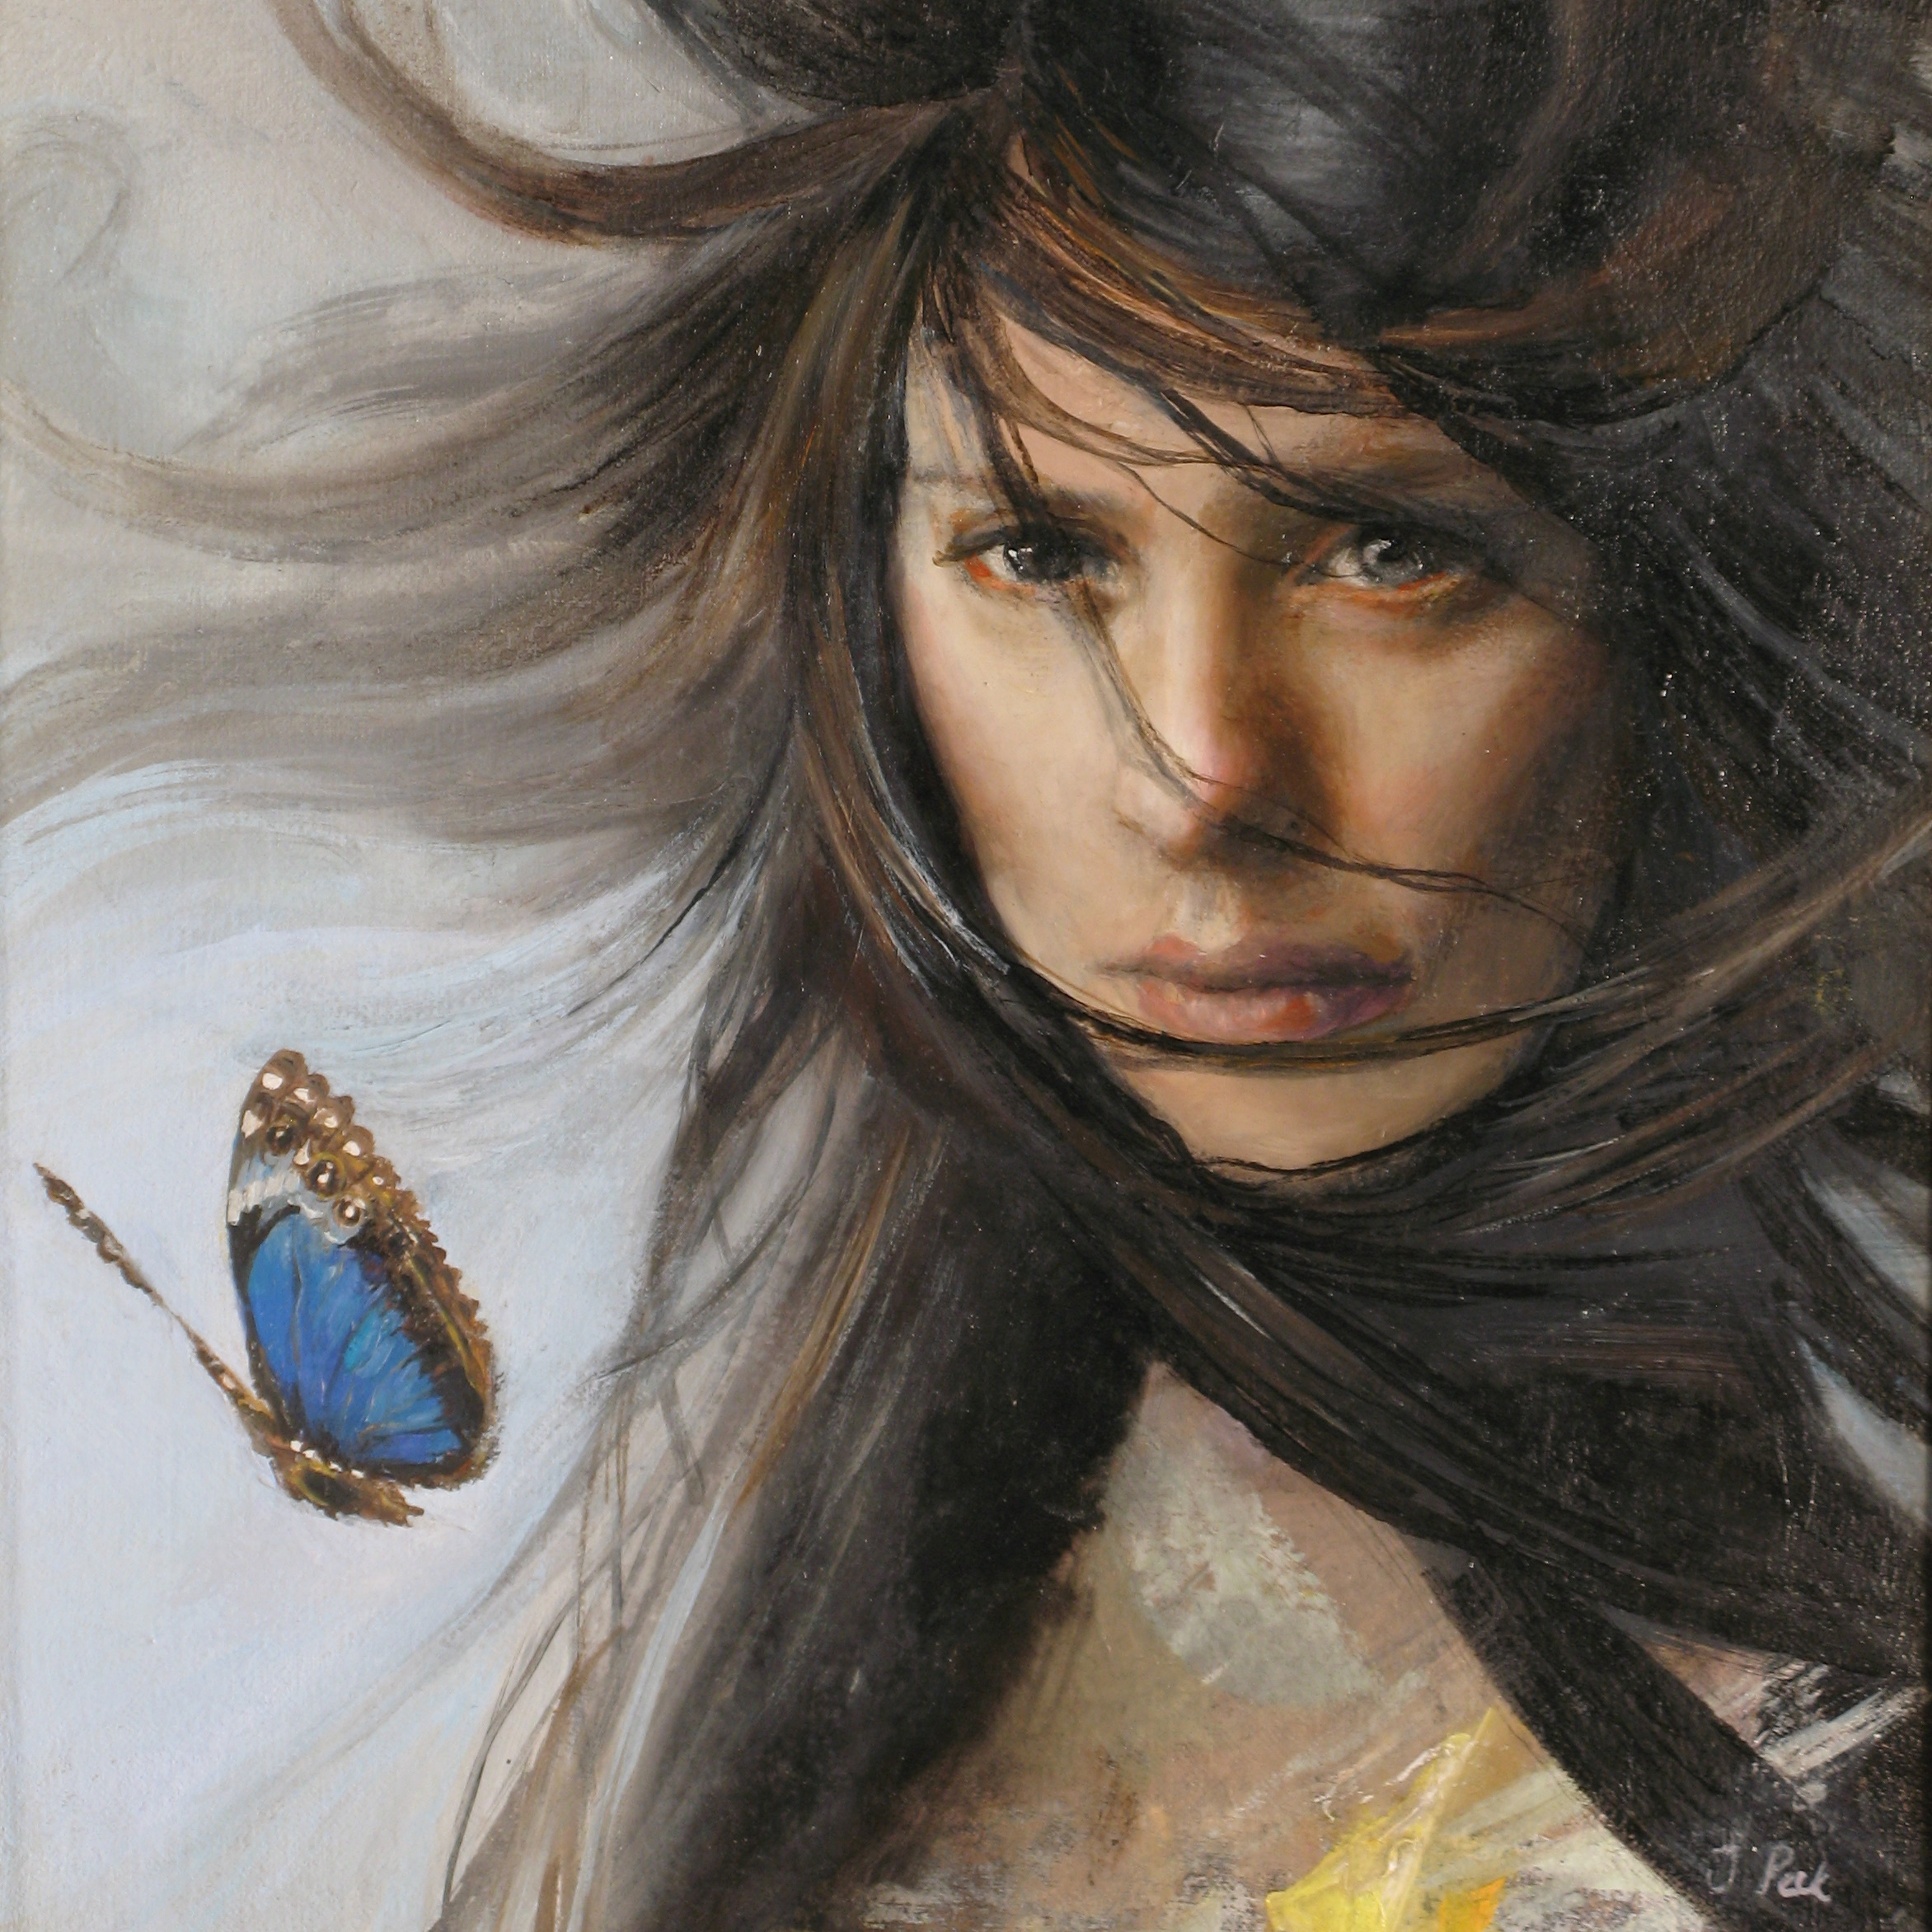 Butterfly Effect (Private Collection)